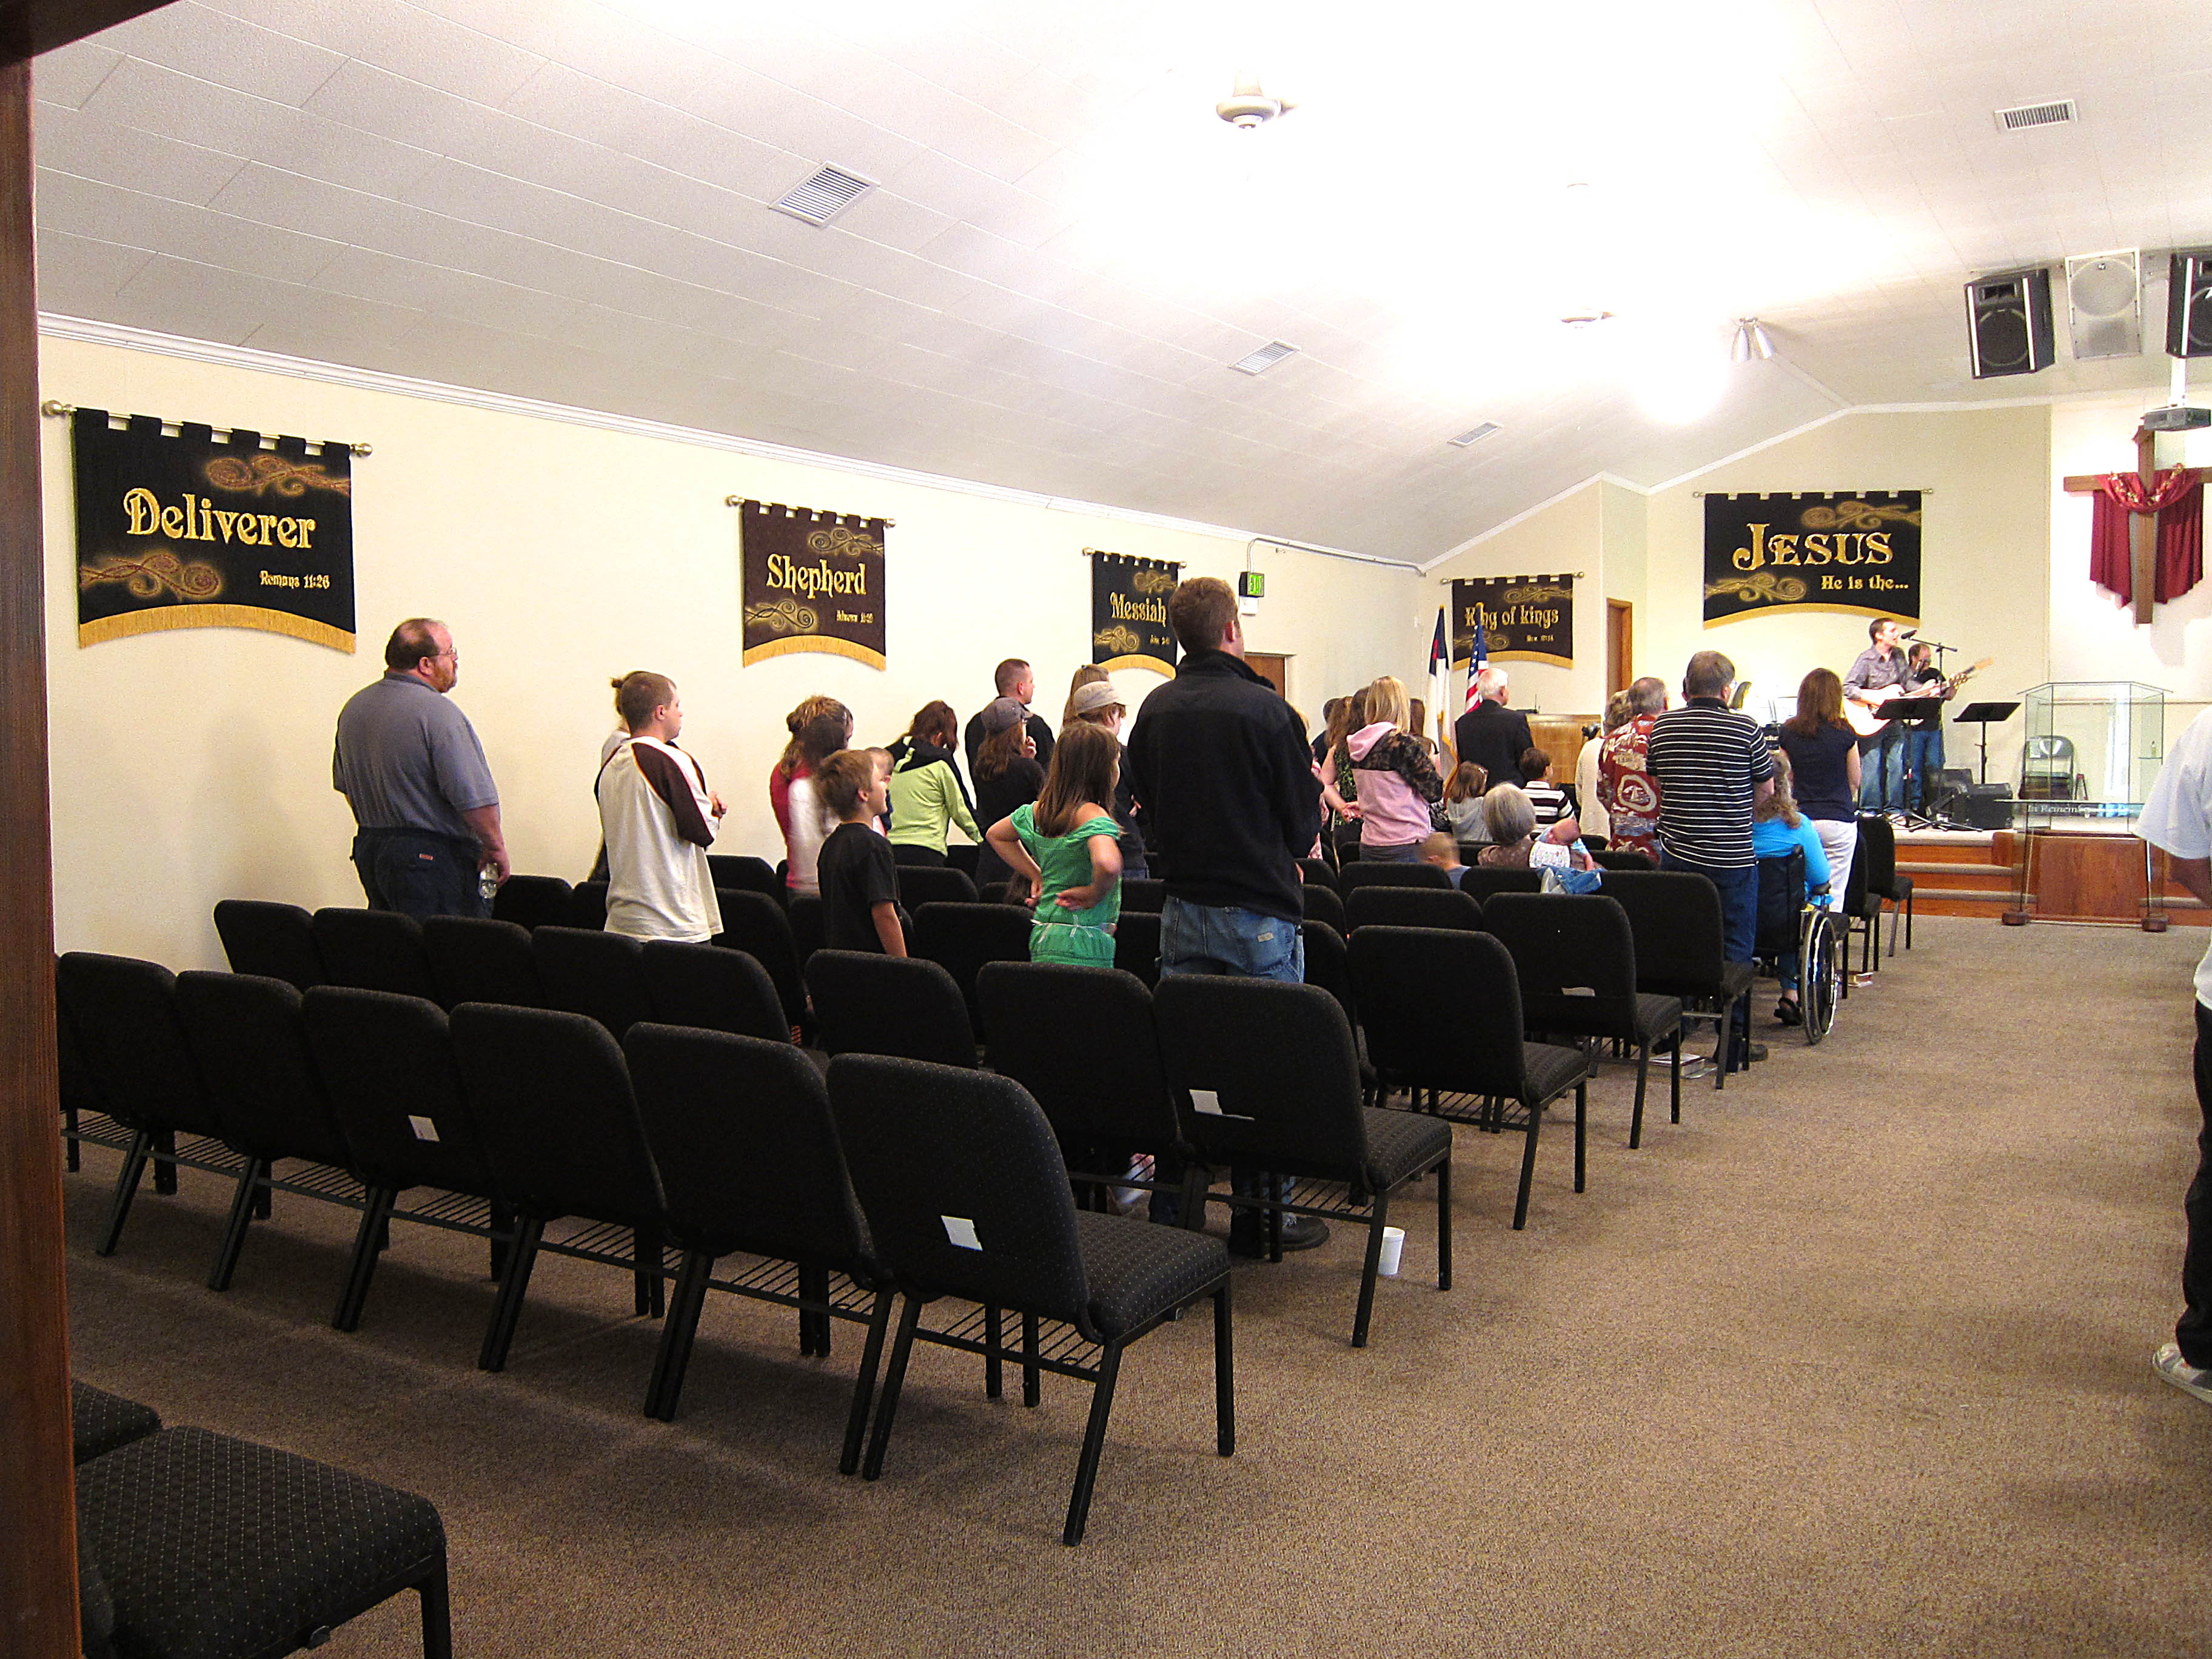 People Worshiping with the new Church Decorations featuring the Names of God Banners